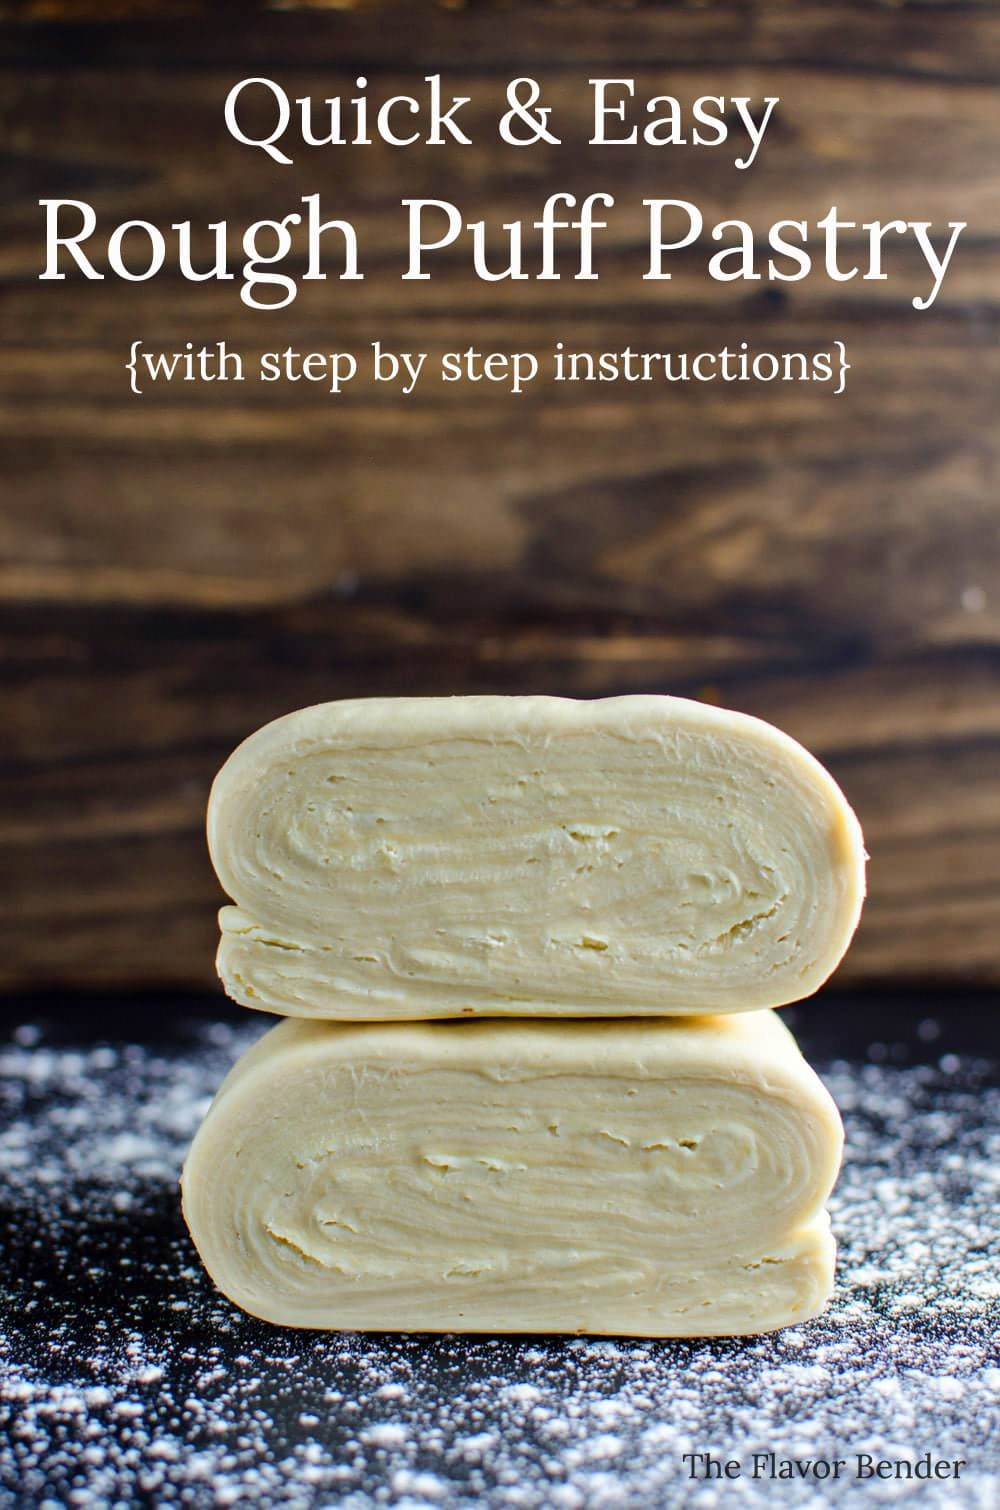 I first published this rough puff pastry recipe in December 2014, just a few months after I started this blog. Loved the recipe then and I love the recipe ...